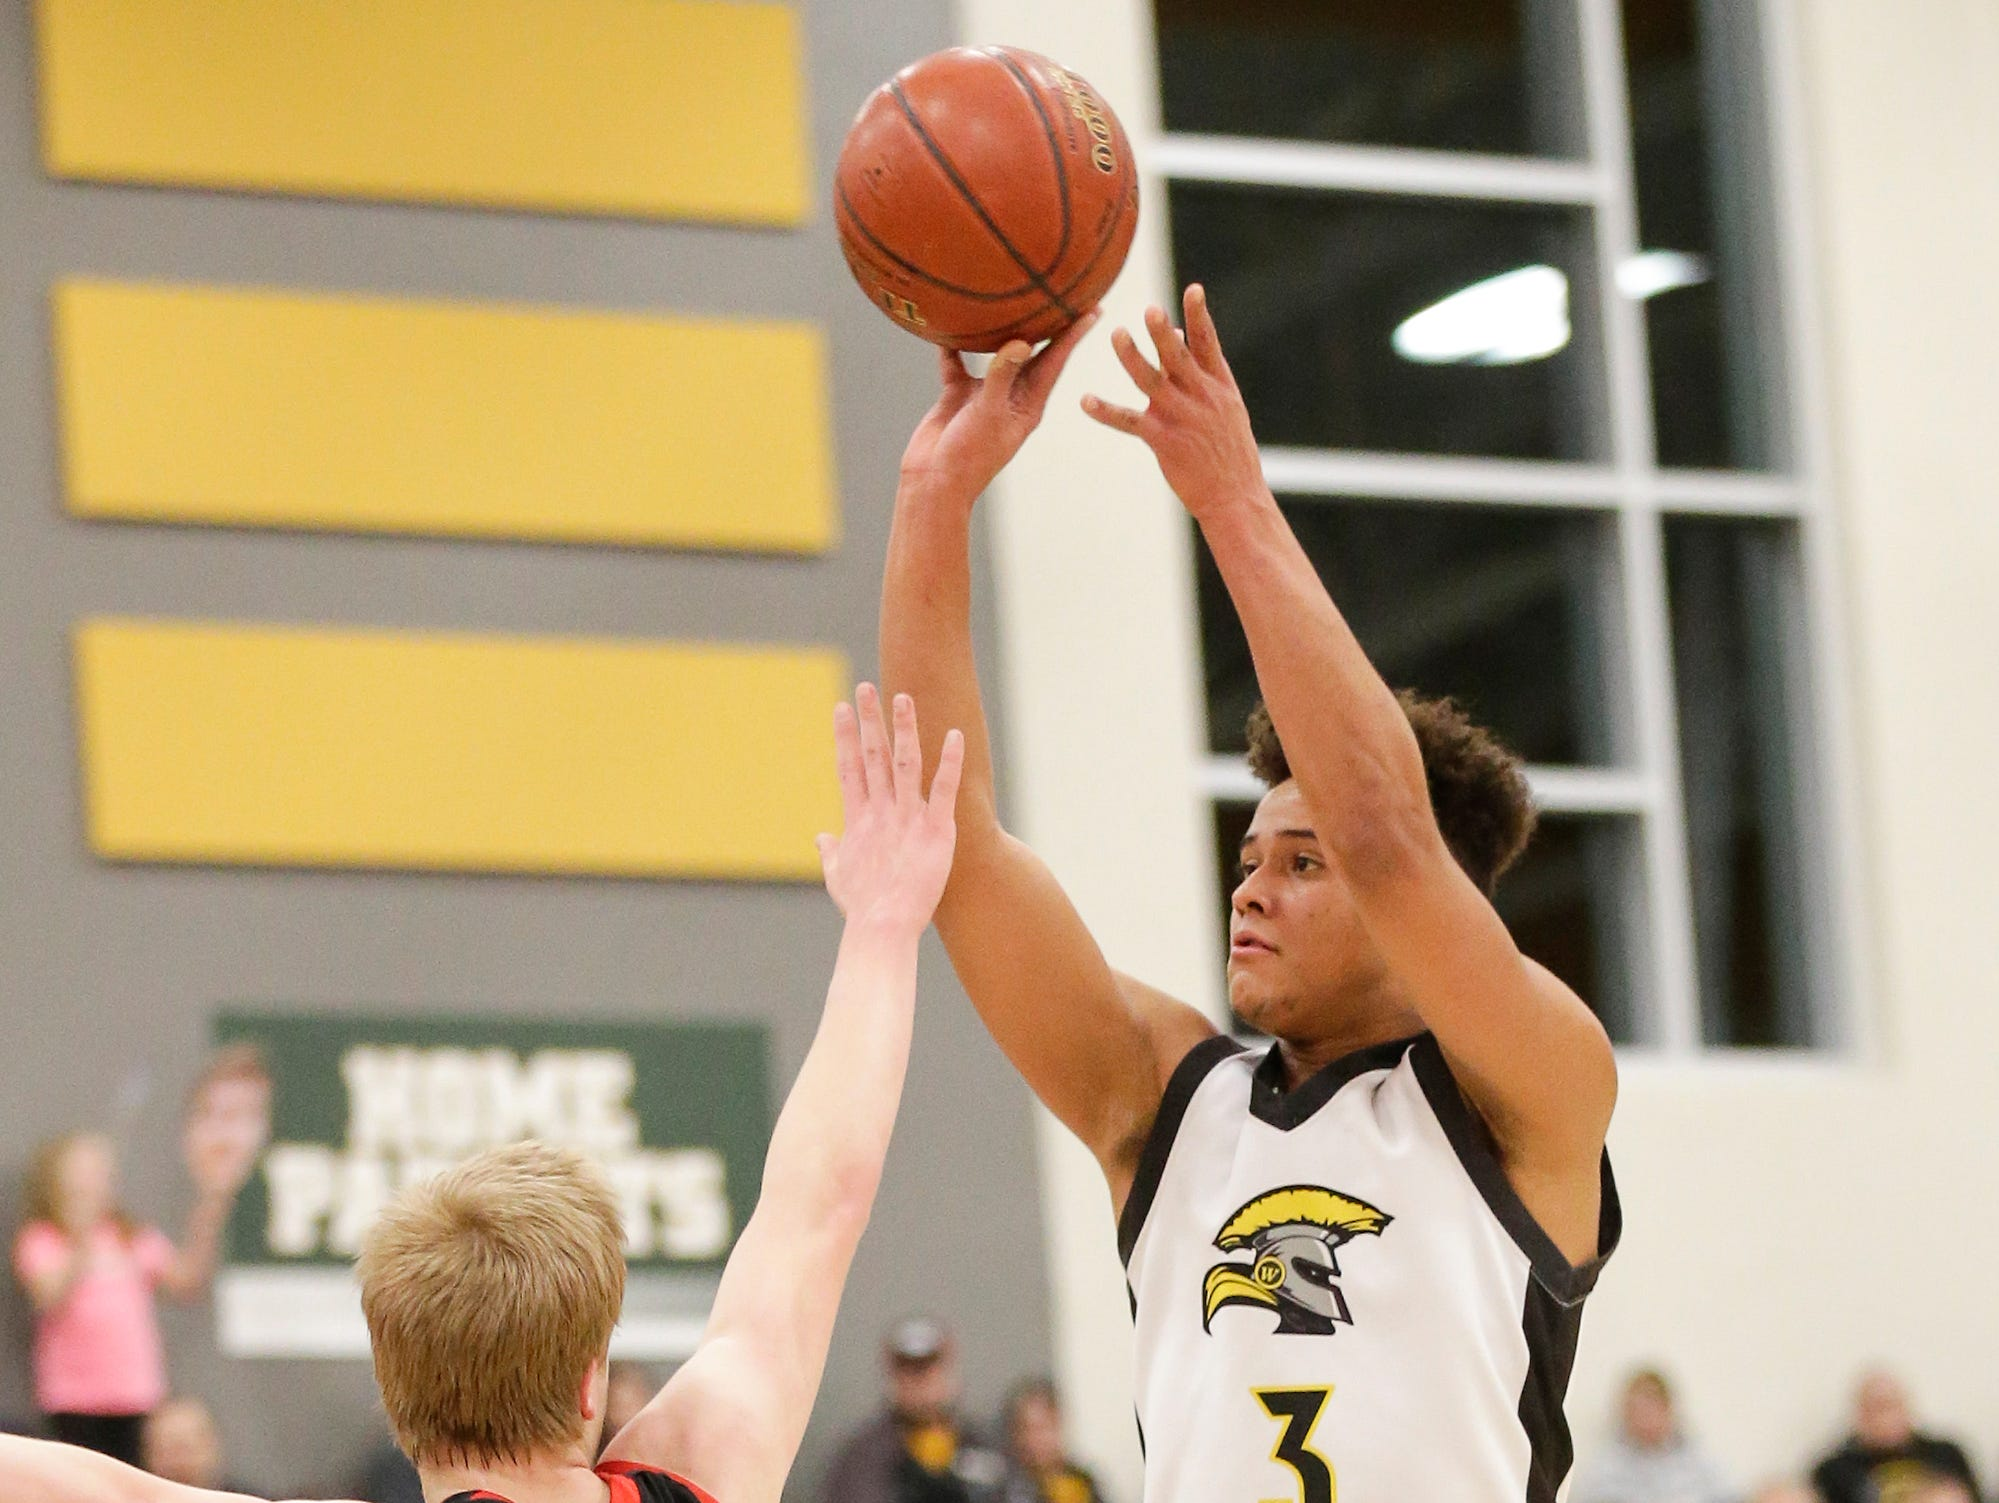 Waupun High School boys basketball's Quintin Winterfeldt goes up for a basket over Columbus High School's Sam Kahl during their WIAA division 3 sectional semi-final game Thursday, March 7, 2019 in Beaver Dam, Wis. Waupun won the game 79-36. Doug Raflik/USA TODAY NETWORK-Wisconsin